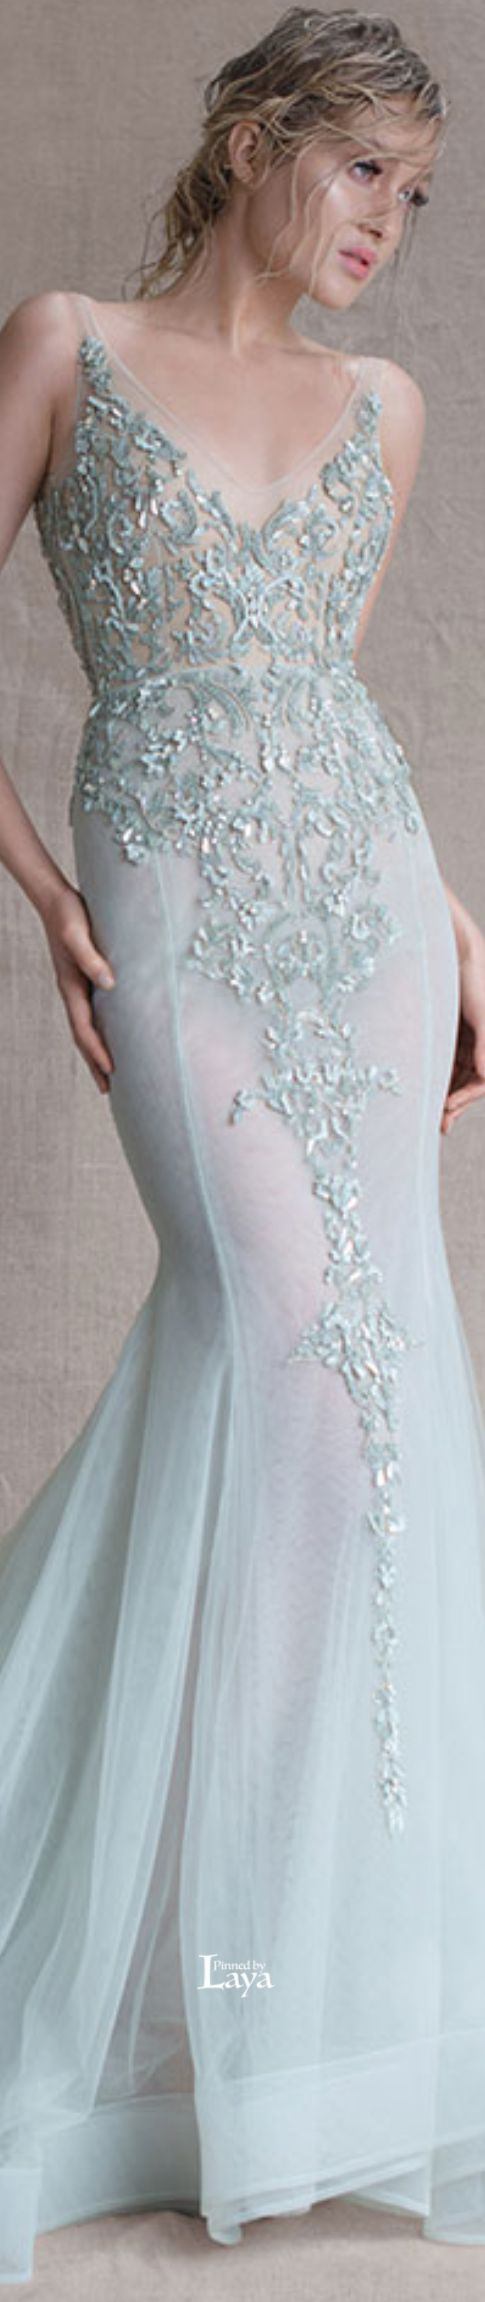 230 best ▫♢ Paolo Sebastian ◦◇*¤° images on Pinterest | Paolo ...